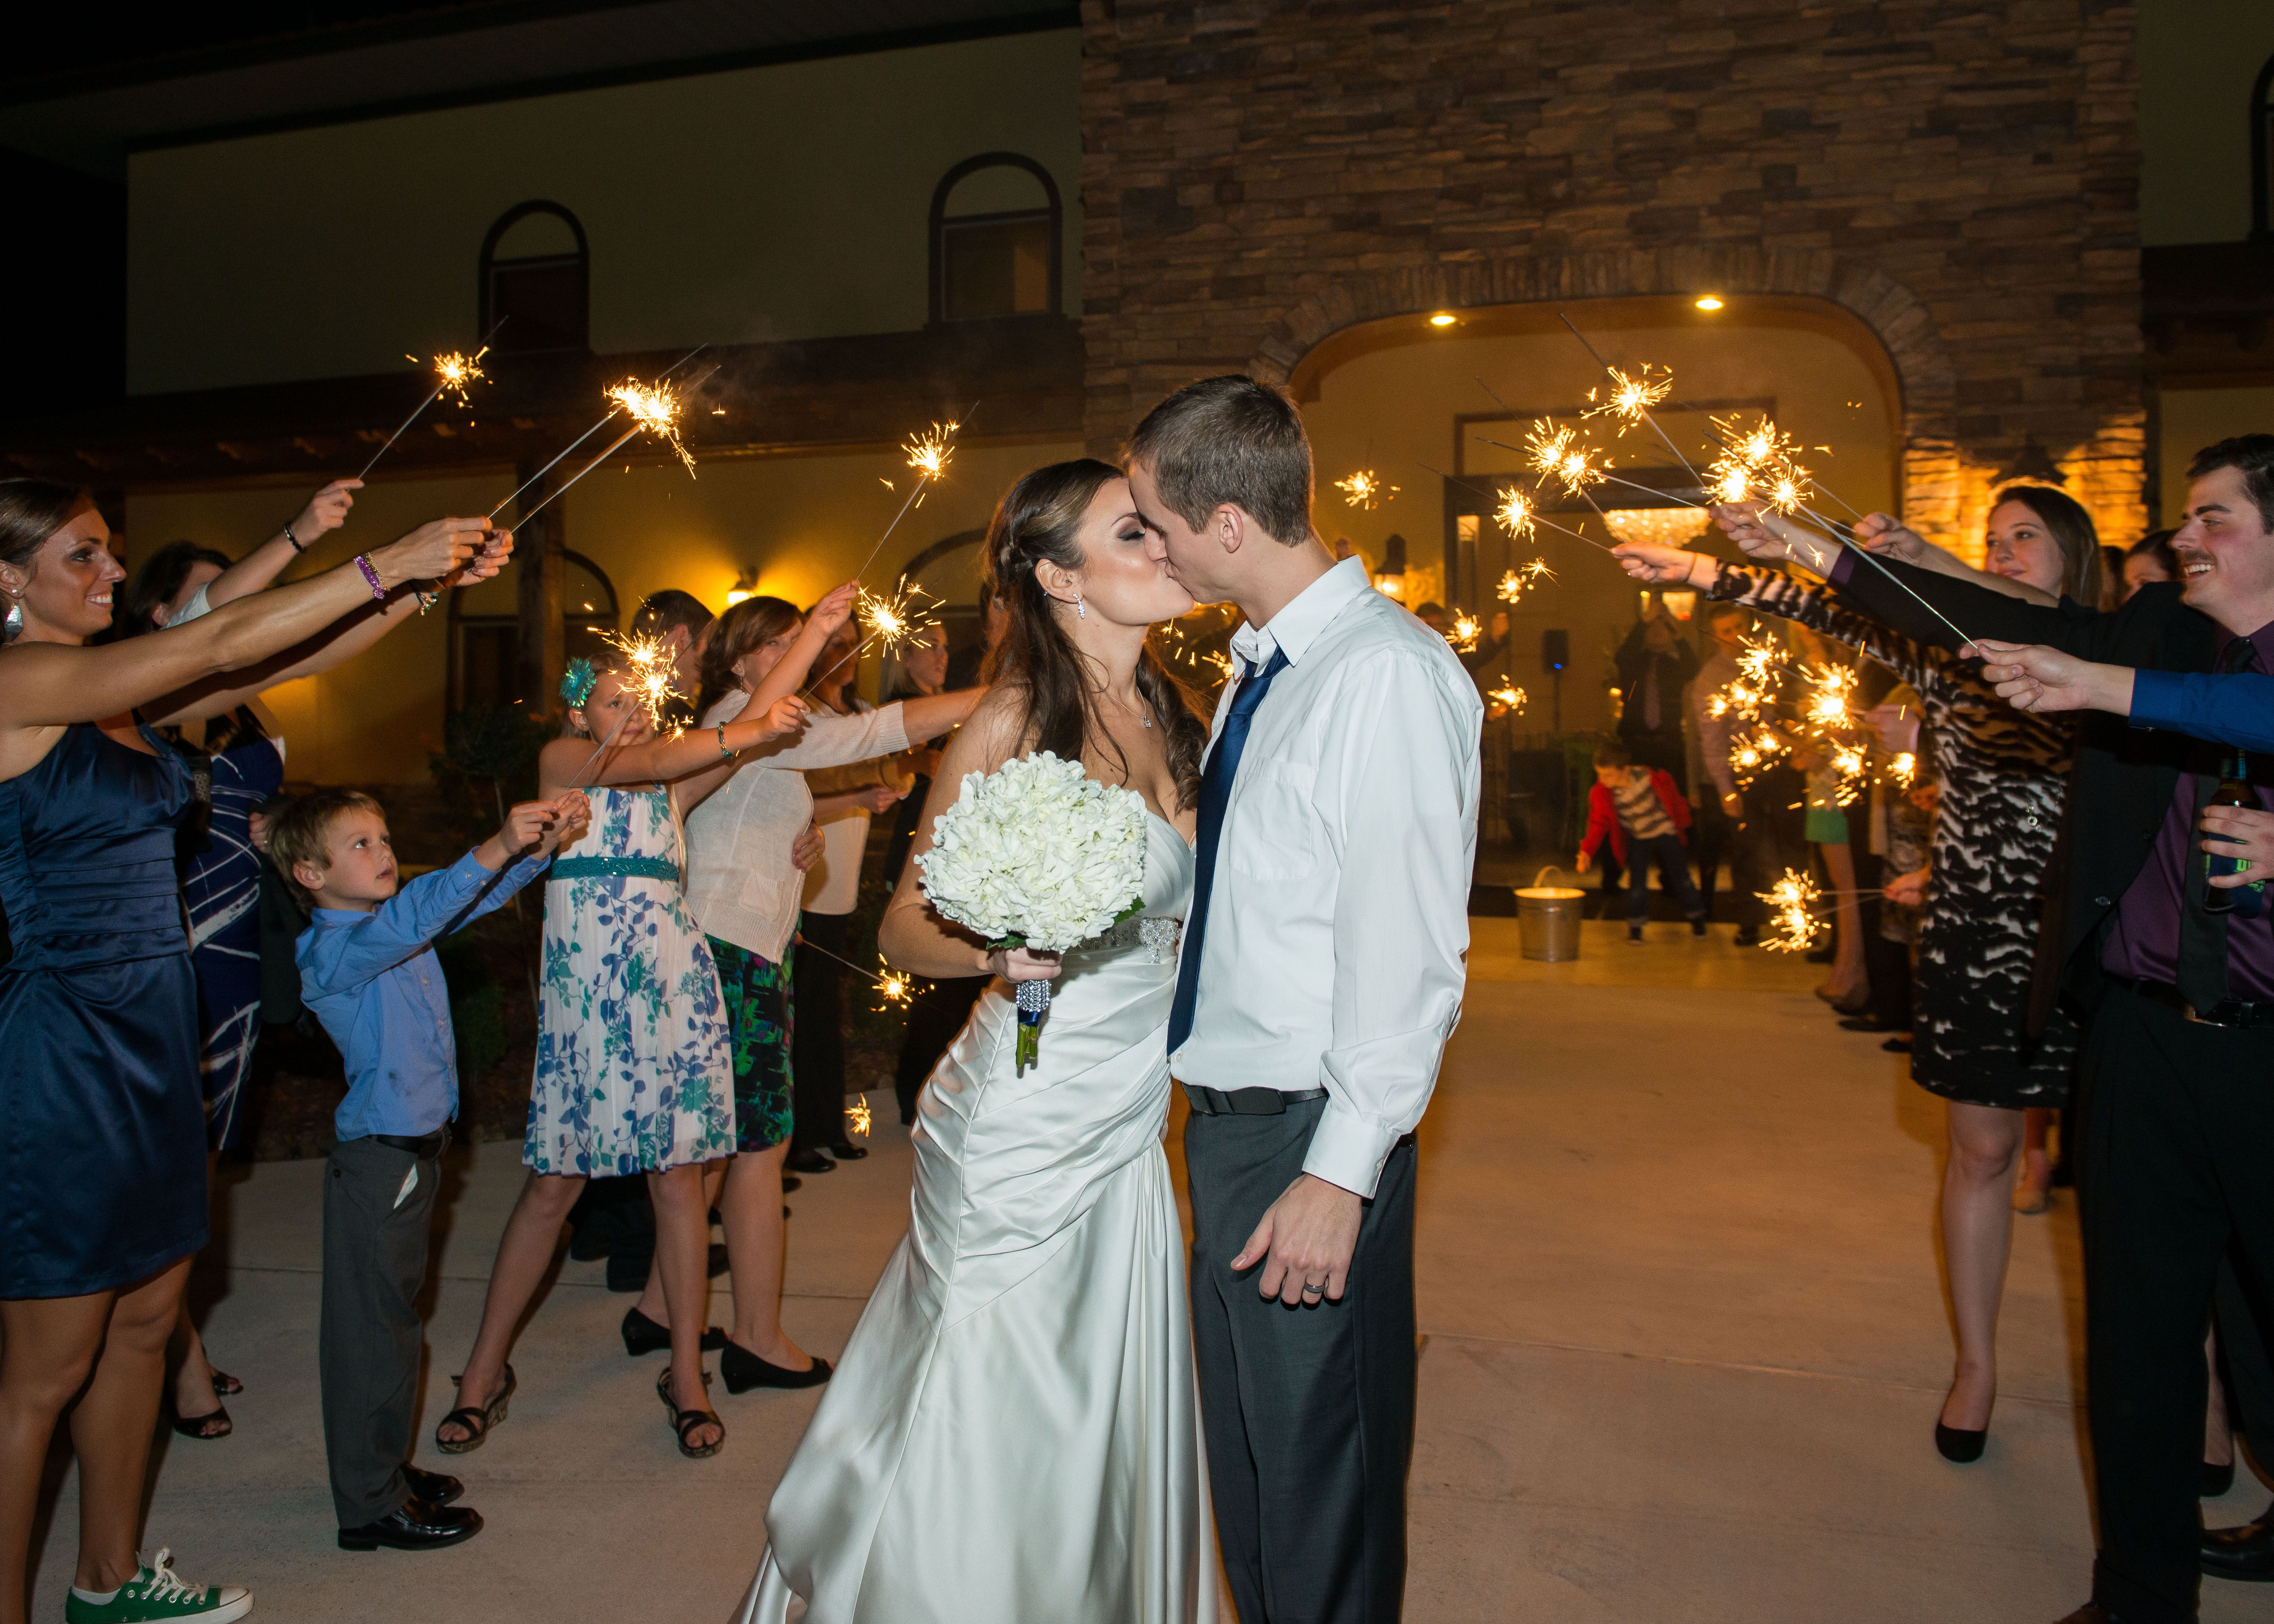 Wedding Sparklers Outdoor Weddings In Houston Ceremony Clear